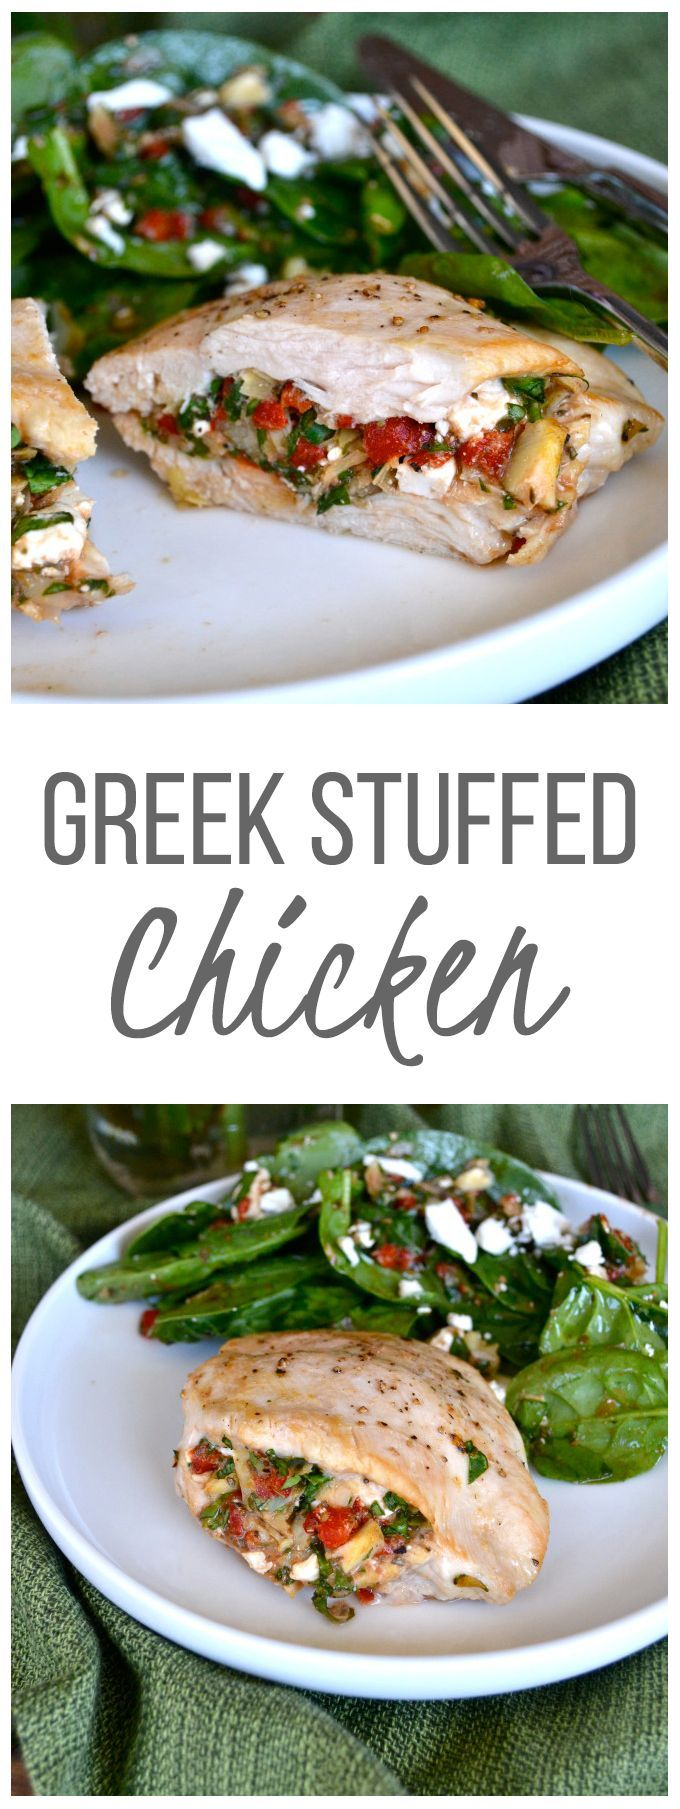 253 best images about greek food and more on pinterest rick greek stuffed chicken real food recipesgreek forumfinder Image collections